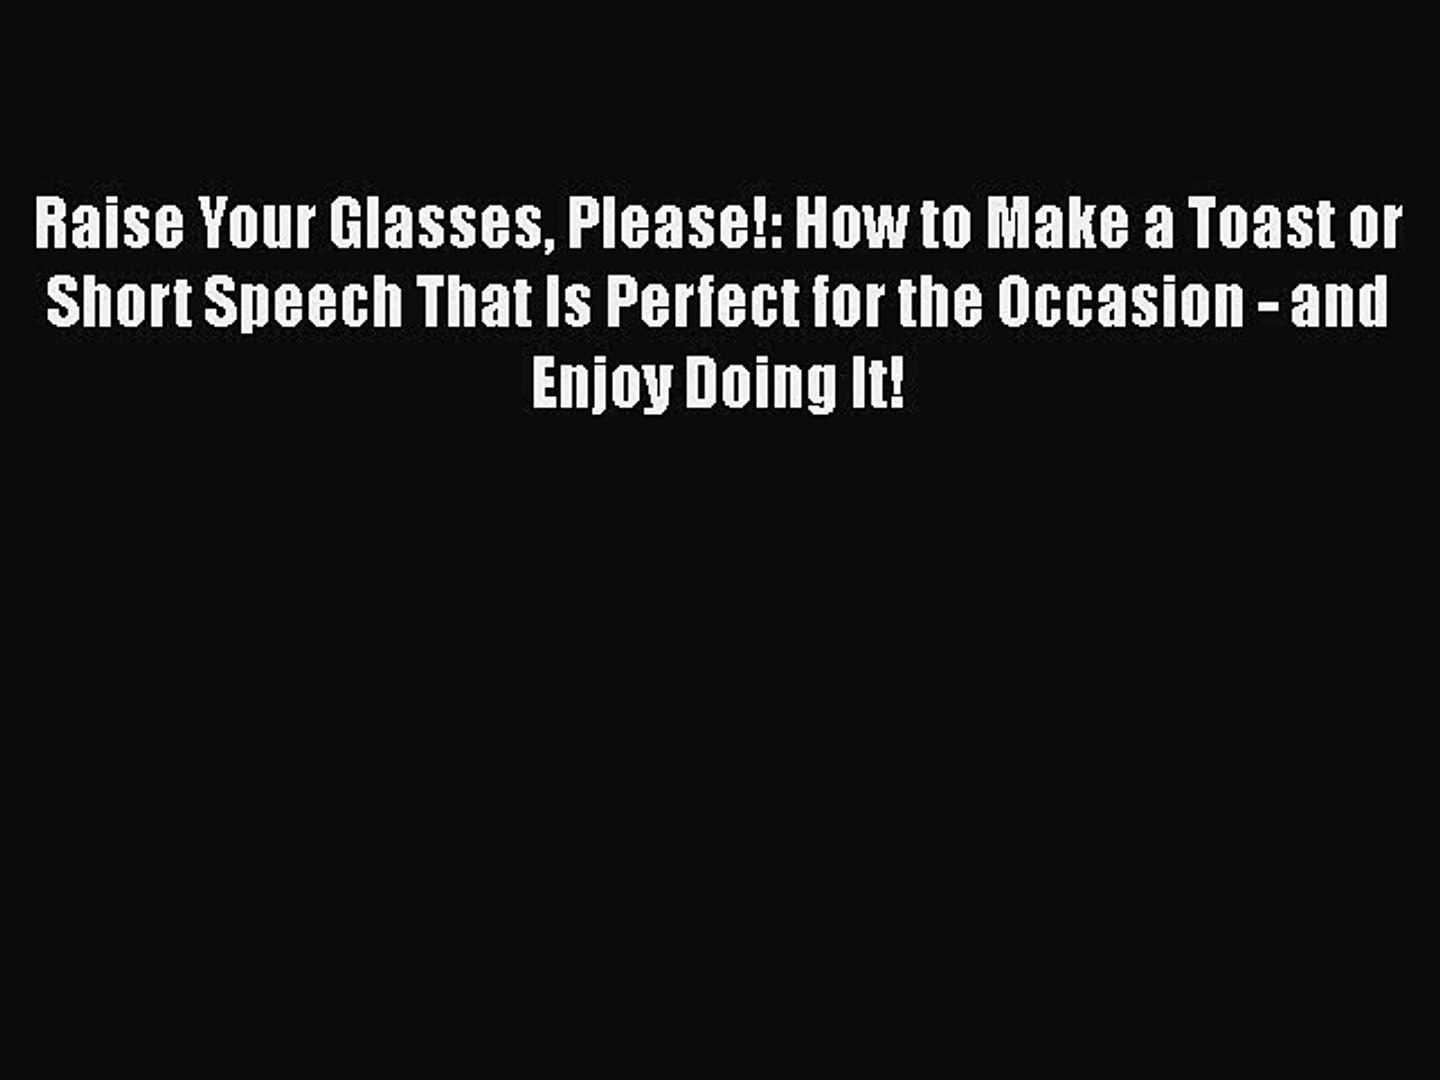 [PDF] Raise Your Glasses Please!: How to Make a Toast or Short Speech That Is Perfect for the